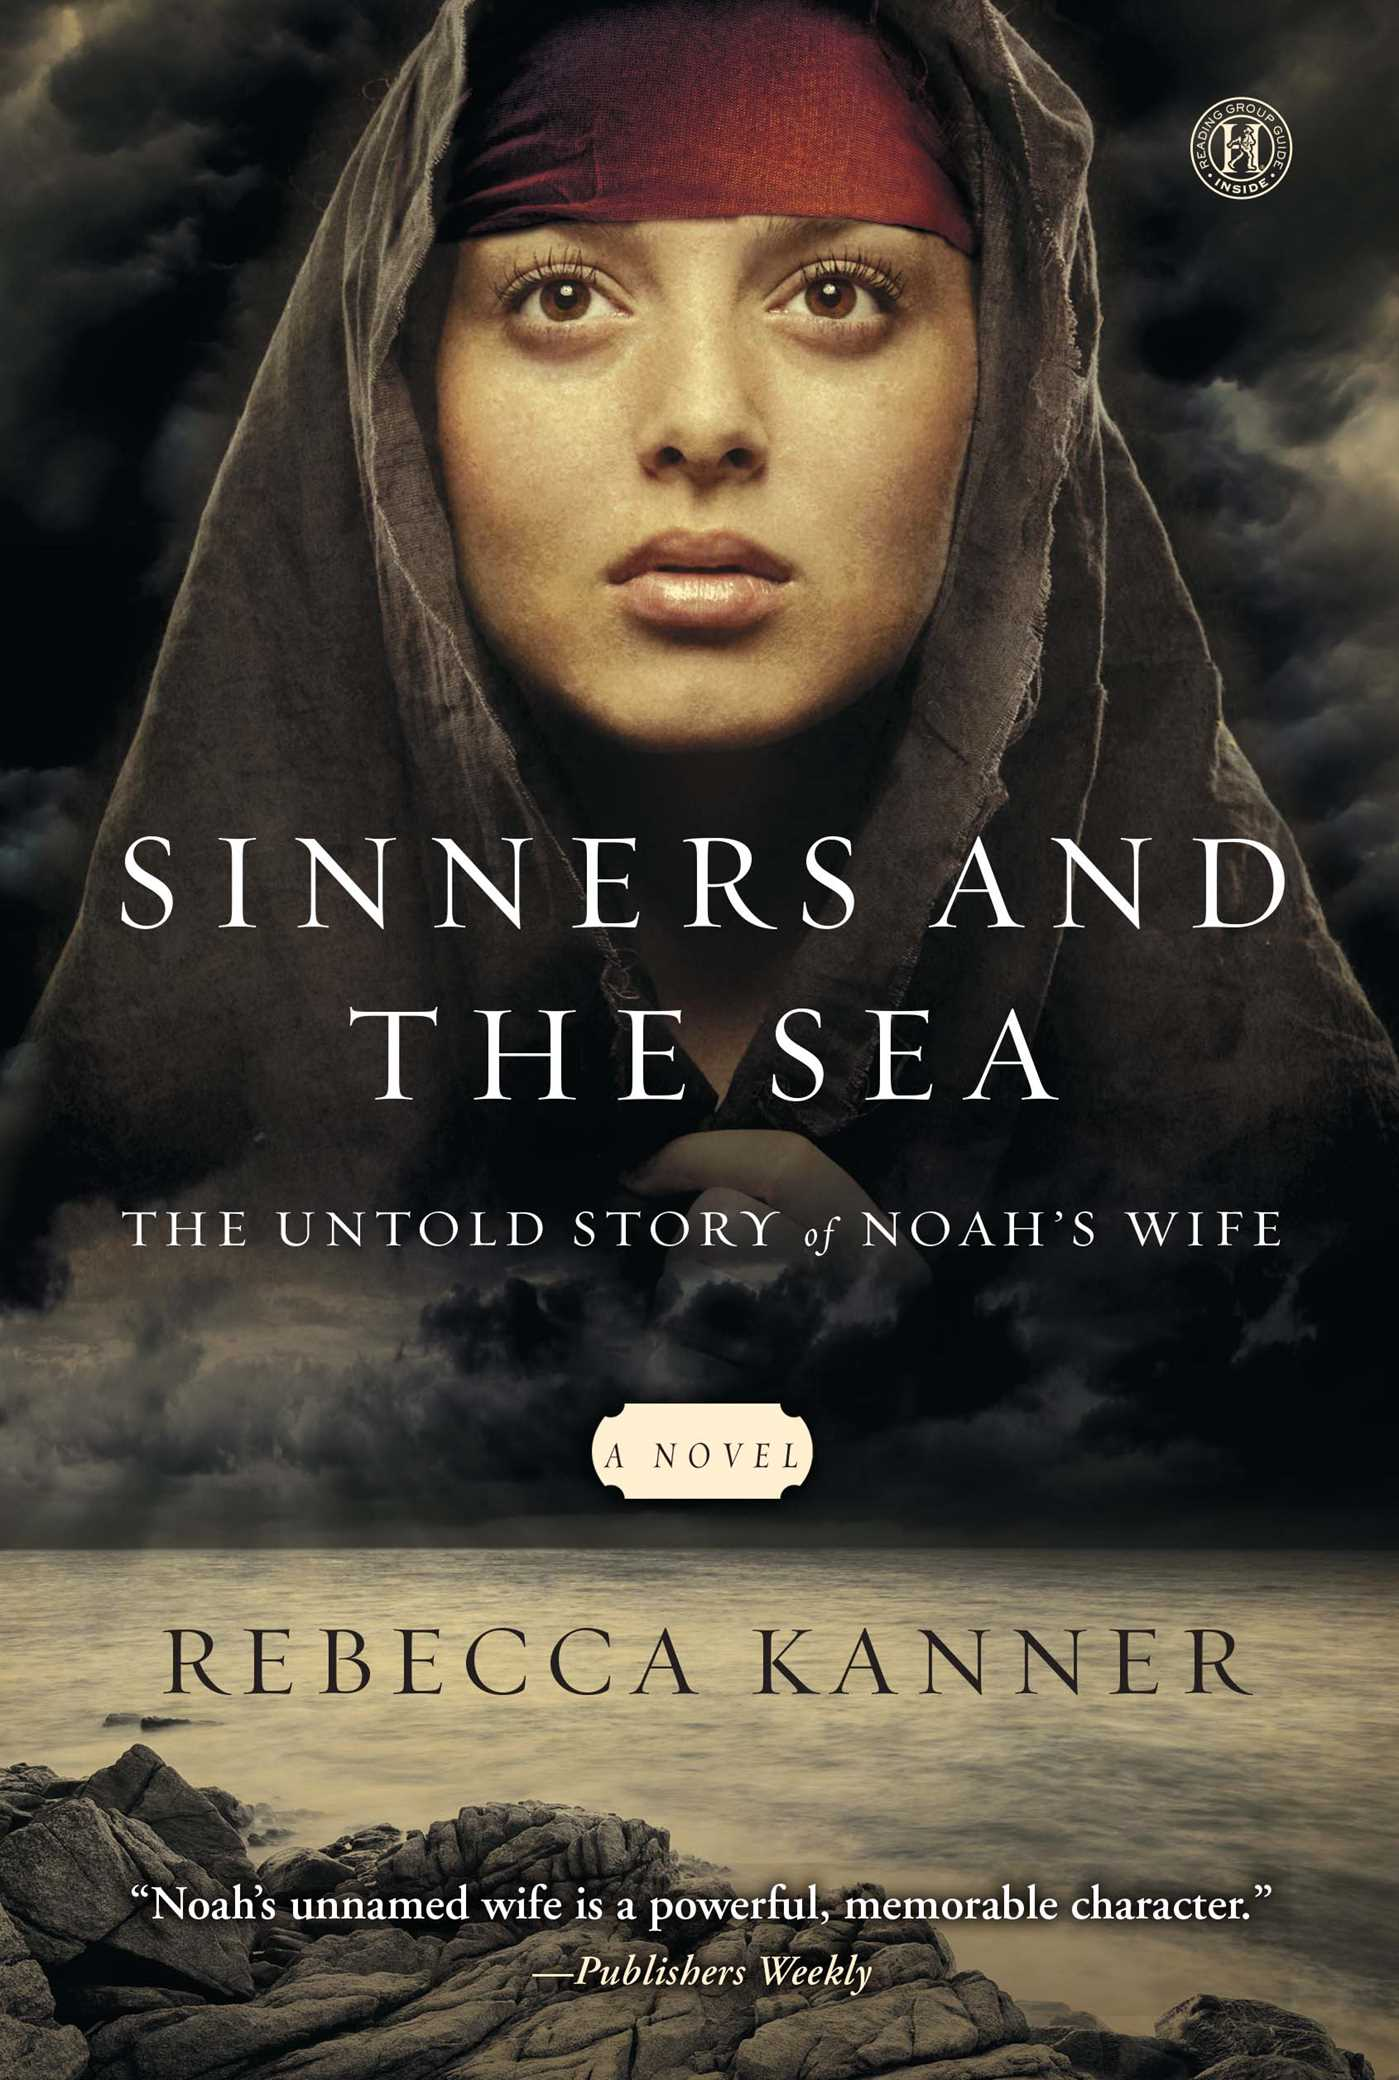 Sinners and the sea 9781451695250 hr